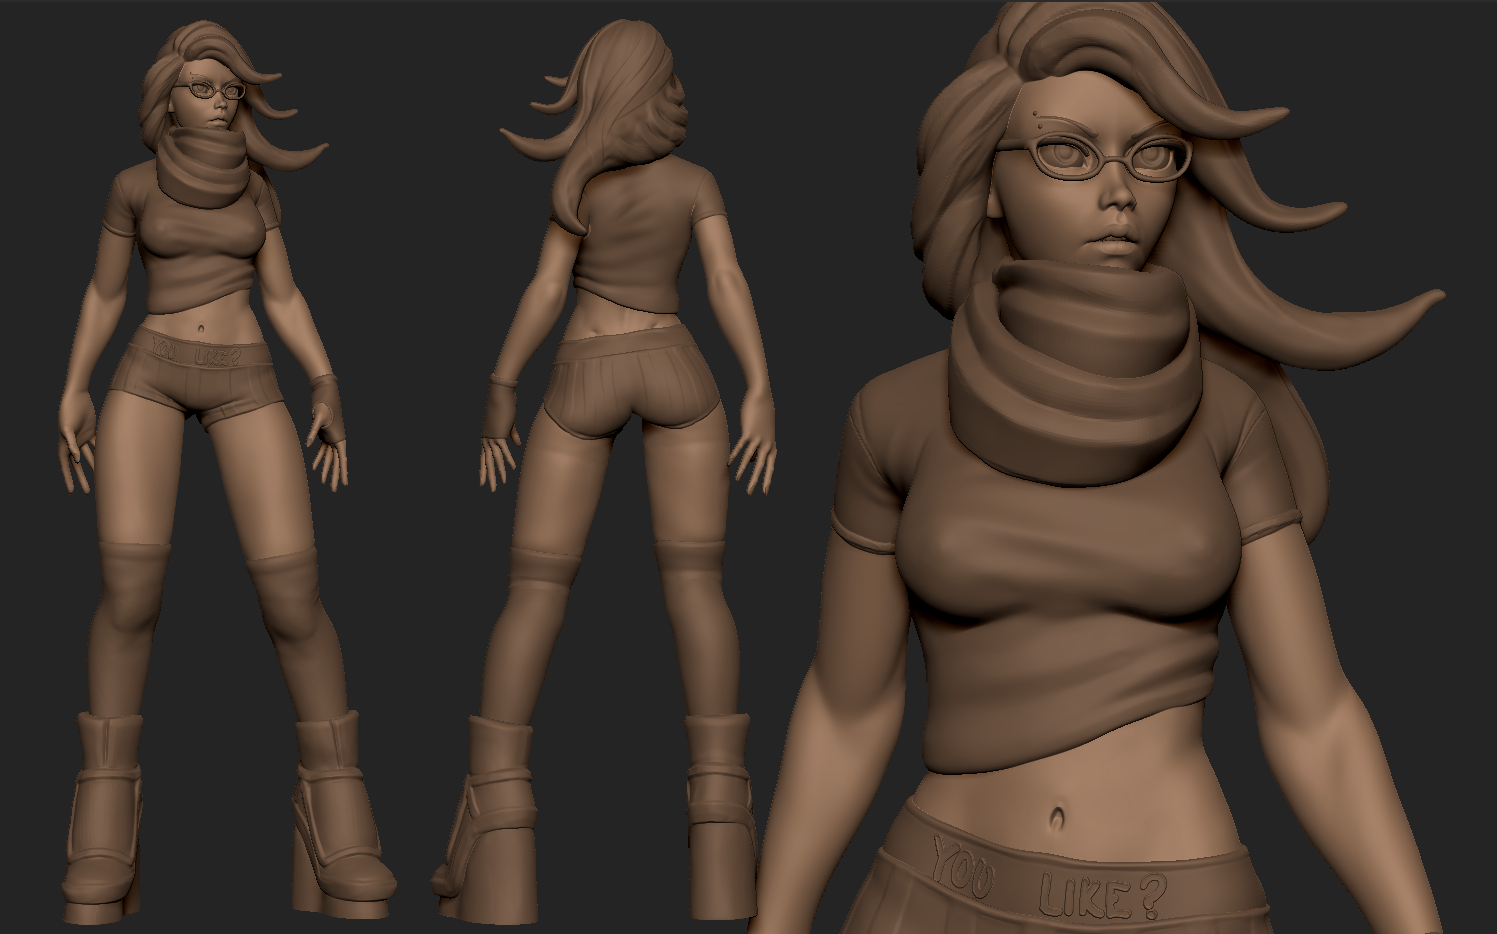 sunday_sculpt_wip_by_andra_arts-d7og2ps.png